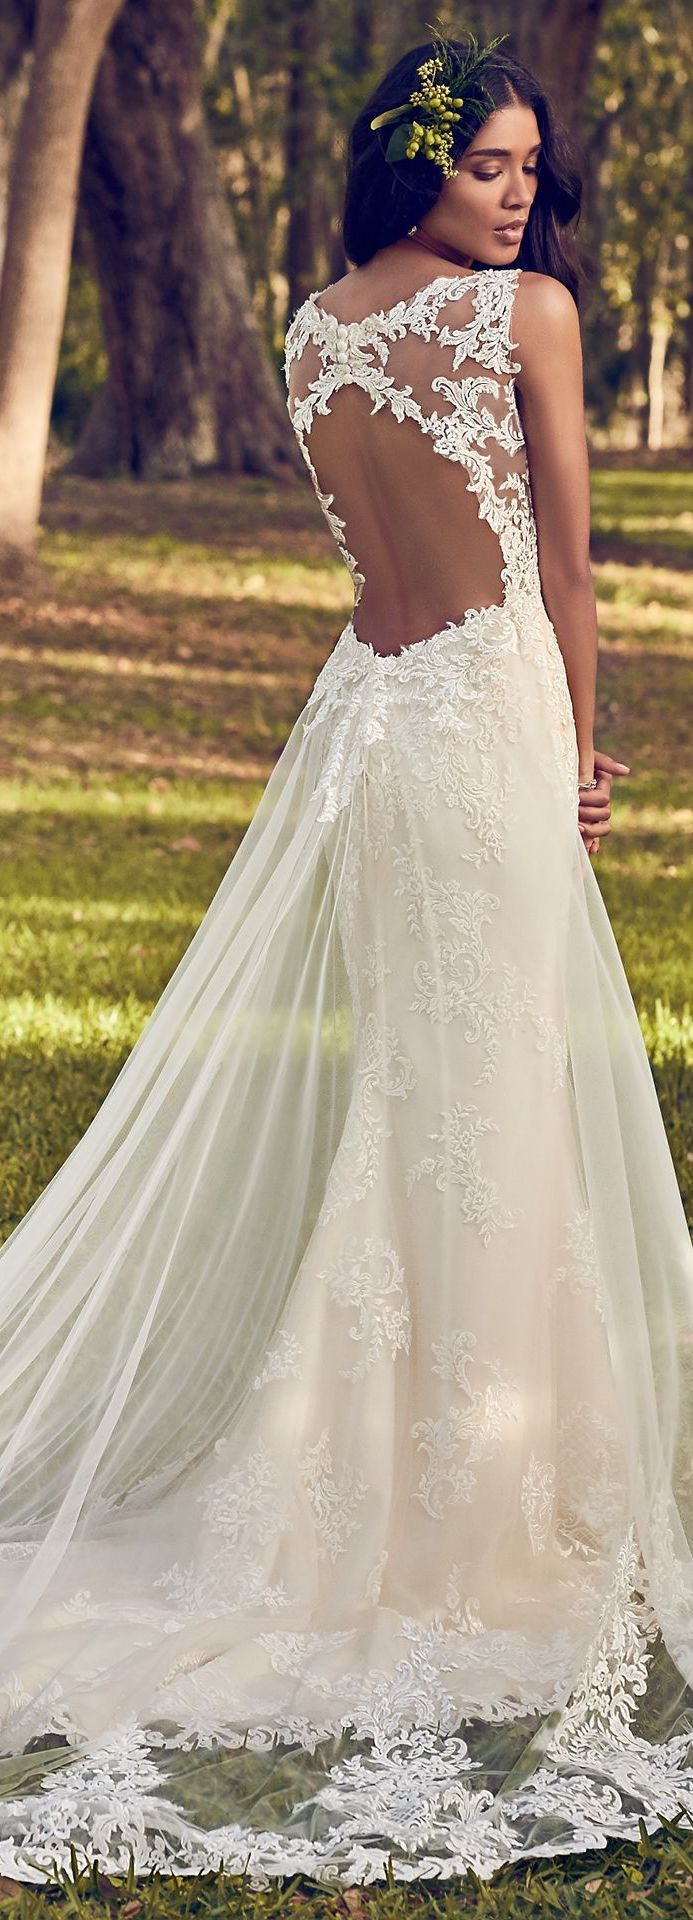 Bhavna's note: Love the sheer layer and the train on this one with lace/beading on the train. Also really like how the skirt dips in above the butt. Would love an additional sheer layer that trails like this.